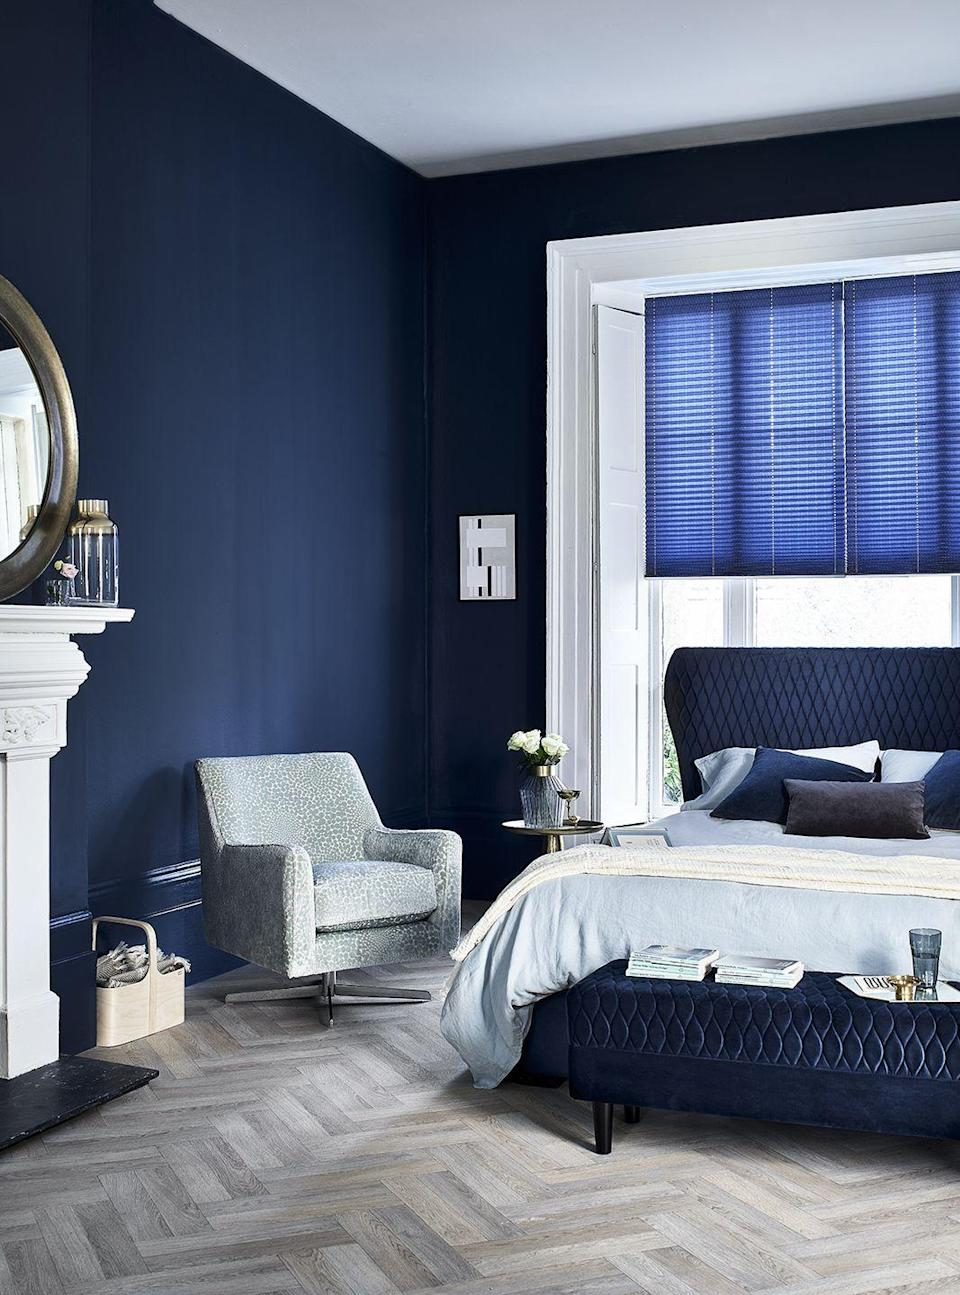 """<p>Create a Soho-inspired luxe bedroom vibe with <a href=""""https://www.dreams.co.uk/grove-velvet-finish-upholstered-ottoman-bed-frame/p/251-00336"""" rel=""""nofollow noopener"""" target=""""_blank"""" data-ylk=""""slk:Grove"""" class=""""link rapid-noclick-resp"""">Grove</a> from the House Beautiful Collection at Dreams. Sumptuous, velvet-textured, quilted upholstery in rich royal blue sets the seductive scene, creating a sleeping space that's restful and alluring in equal measure. Complete the opulent look with a matching plush <a href=""""https://www.dreams.co.uk/grove-1-drawer-usb-charging-bedside-chest/p/810-00148"""" rel=""""nofollow noopener"""" target=""""_blank"""" data-ylk=""""slk:bedside chest"""" class=""""link rapid-noclick-resp"""">bedside chest</a>, <a href=""""https://www.dreams.co.uk/grove-blanket-box/p/020-01173"""" rel=""""nofollow noopener"""" target=""""_blank"""" data-ylk=""""slk:blanket box"""" class=""""link rapid-noclick-resp"""">blanket box</a> and <a href=""""https://www.dreams.co.uk/grove-bench/p/020-01177"""" rel=""""nofollow noopener"""" target=""""_blank"""" data-ylk=""""slk:bench"""" class=""""link rapid-noclick-resp"""">bench</a>.</p><p><a class=""""link rapid-noclick-resp"""" href=""""https://www.dreams.co.uk/grove-velvet-finish-upholstered-ottoman-bed-frame/p/251-00336"""" rel=""""nofollow noopener"""" target=""""_blank"""" data-ylk=""""slk:SHOP NOW"""">SHOP NOW</a></p><p>The House Beautiful Grove is available as a double, king or superking ottoman bed for extra storage, or with Sleepmotion, so you can adjust the bed to your ultimate position for maximum comfort. Check out the full range at <a href=""""https://www.dreams.co.uk/house-beautiful"""" rel=""""nofollow noopener"""" target=""""_blank"""" data-ylk=""""slk:dreams.co.uk/housebeautiful"""" class=""""link rapid-noclick-resp"""">dreams.co.uk/housebeautiful</a>.</p><p><strong>Style Tips for creating the Soho Escape look:</strong></p><p>• Varying cushion sizes and shapes on your bed adds interest and prevents a regimented look.</p><p>• Bold, dark wall colours create a cosy, intimate space, perfect for bedrooms. Freshen the look with white-painted woodwor"""